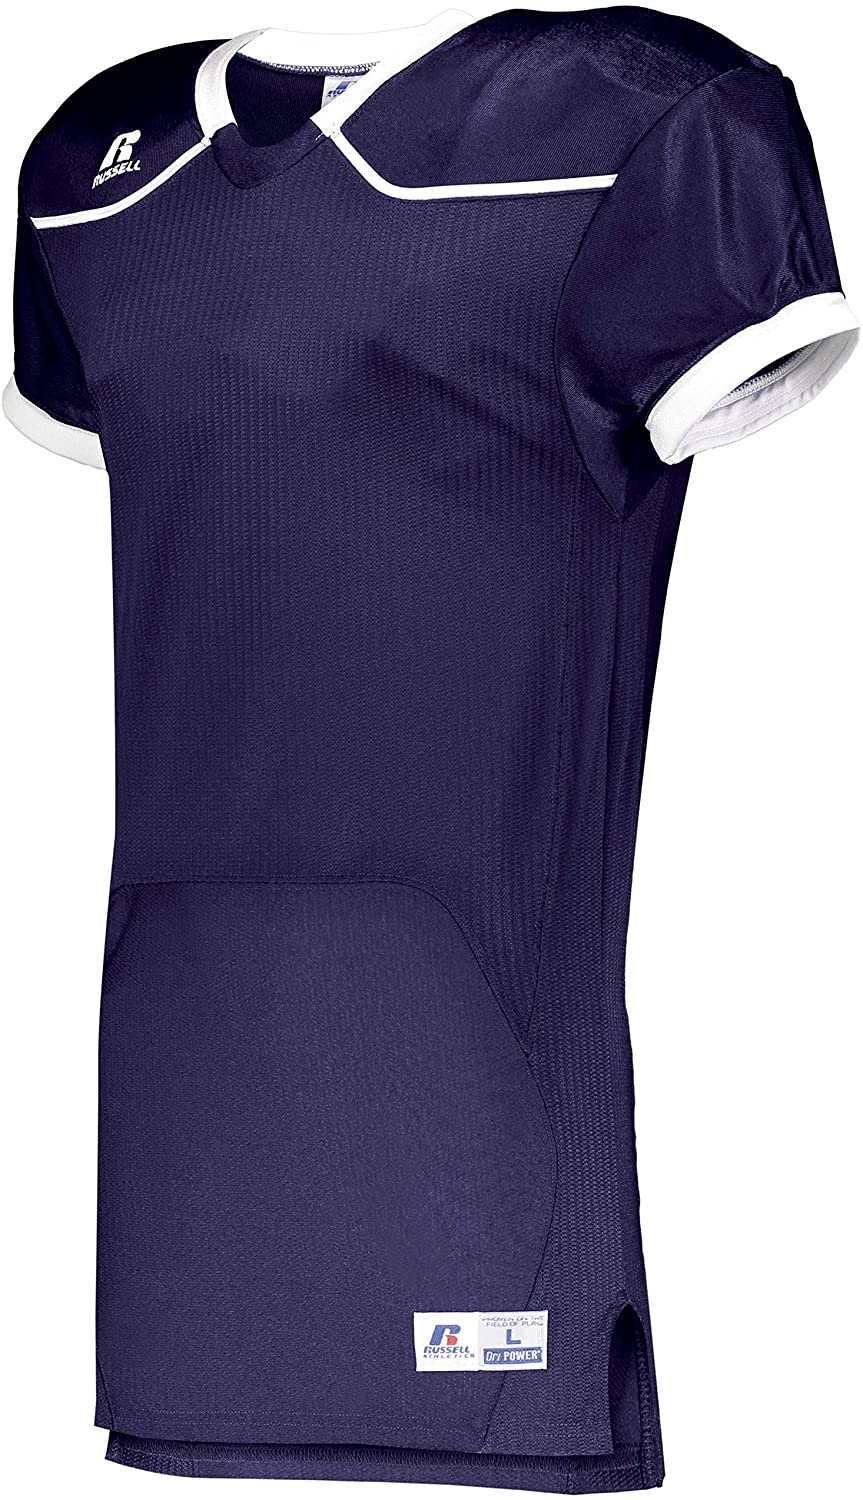 Augusta Sportswear Color Block Game Jersey (Home), Purple/White, S